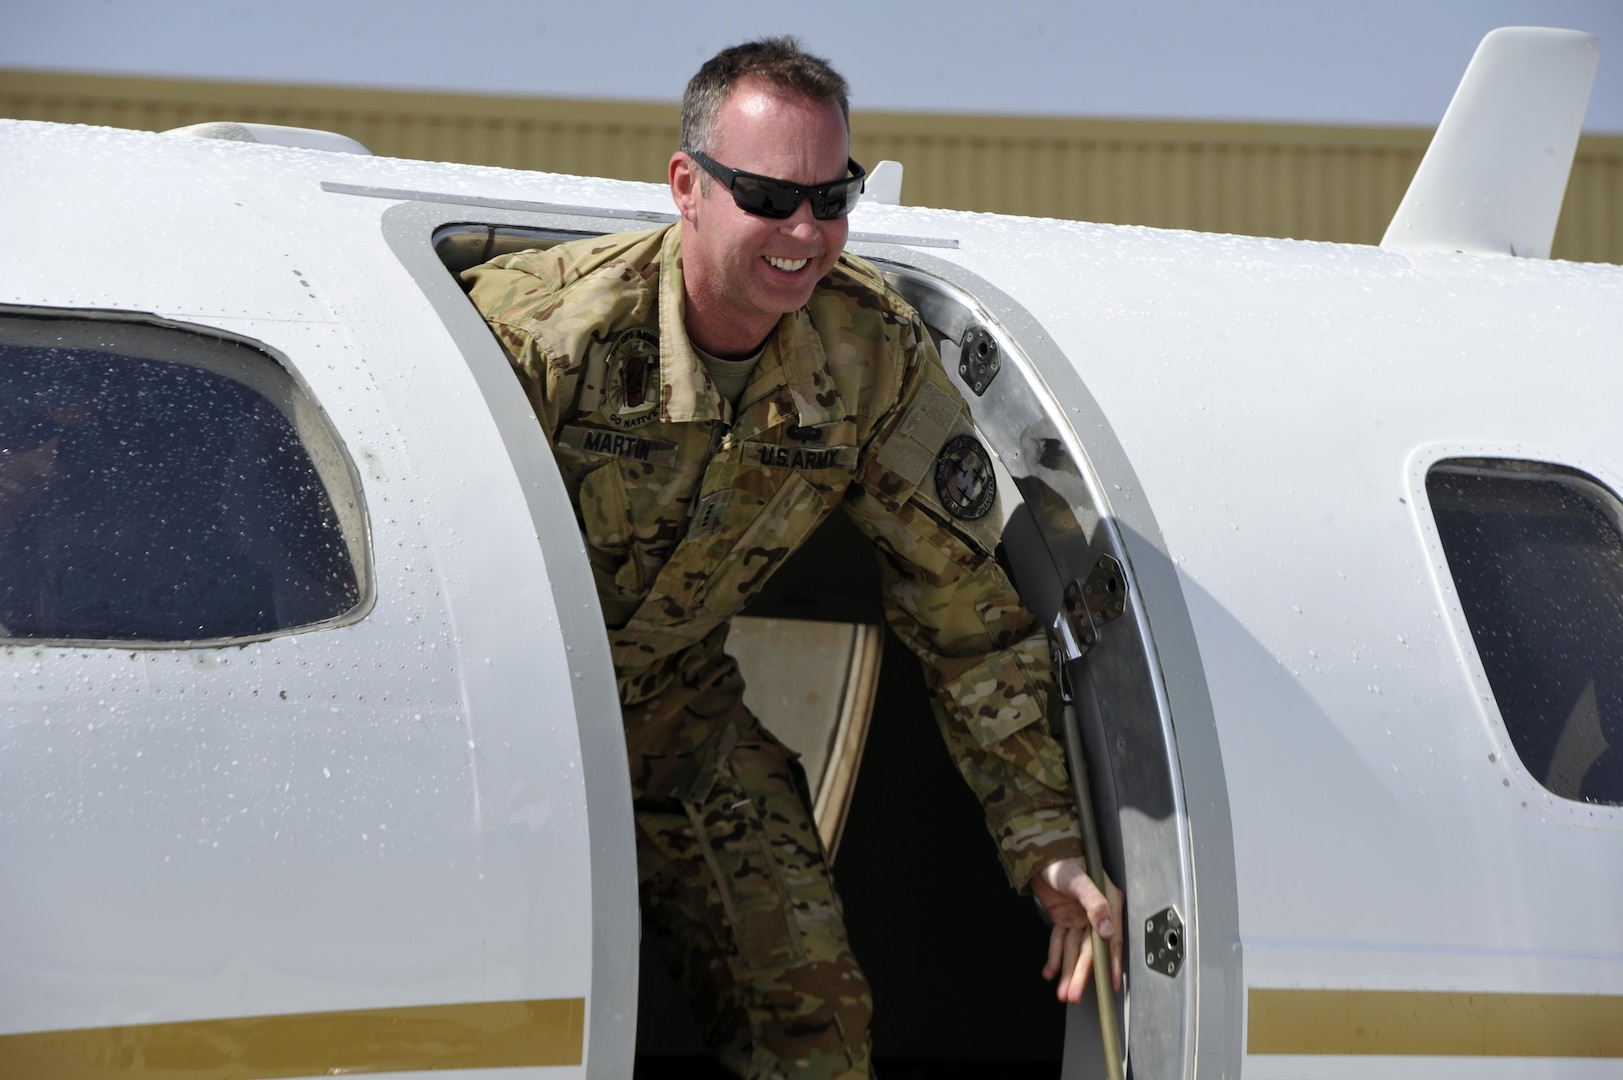 BAGRAM AIRFIELD, Afghanistan (Mar. 17, 2017) - Chief Warrant Officer 4 Joshua Wade Martin exits his C-26 Metrolina aircraft moments after landing here for his final military flight.  Martin is a 28-year veteran of the Arkansas Army National Guard who will redeploy soon and retire from military service this summer.  His team greeted his arrival for his last military flight with the traditional aviation water salute.  Photo by Bob Harrison, U.S. Forces Afghanistan Public Affairs.